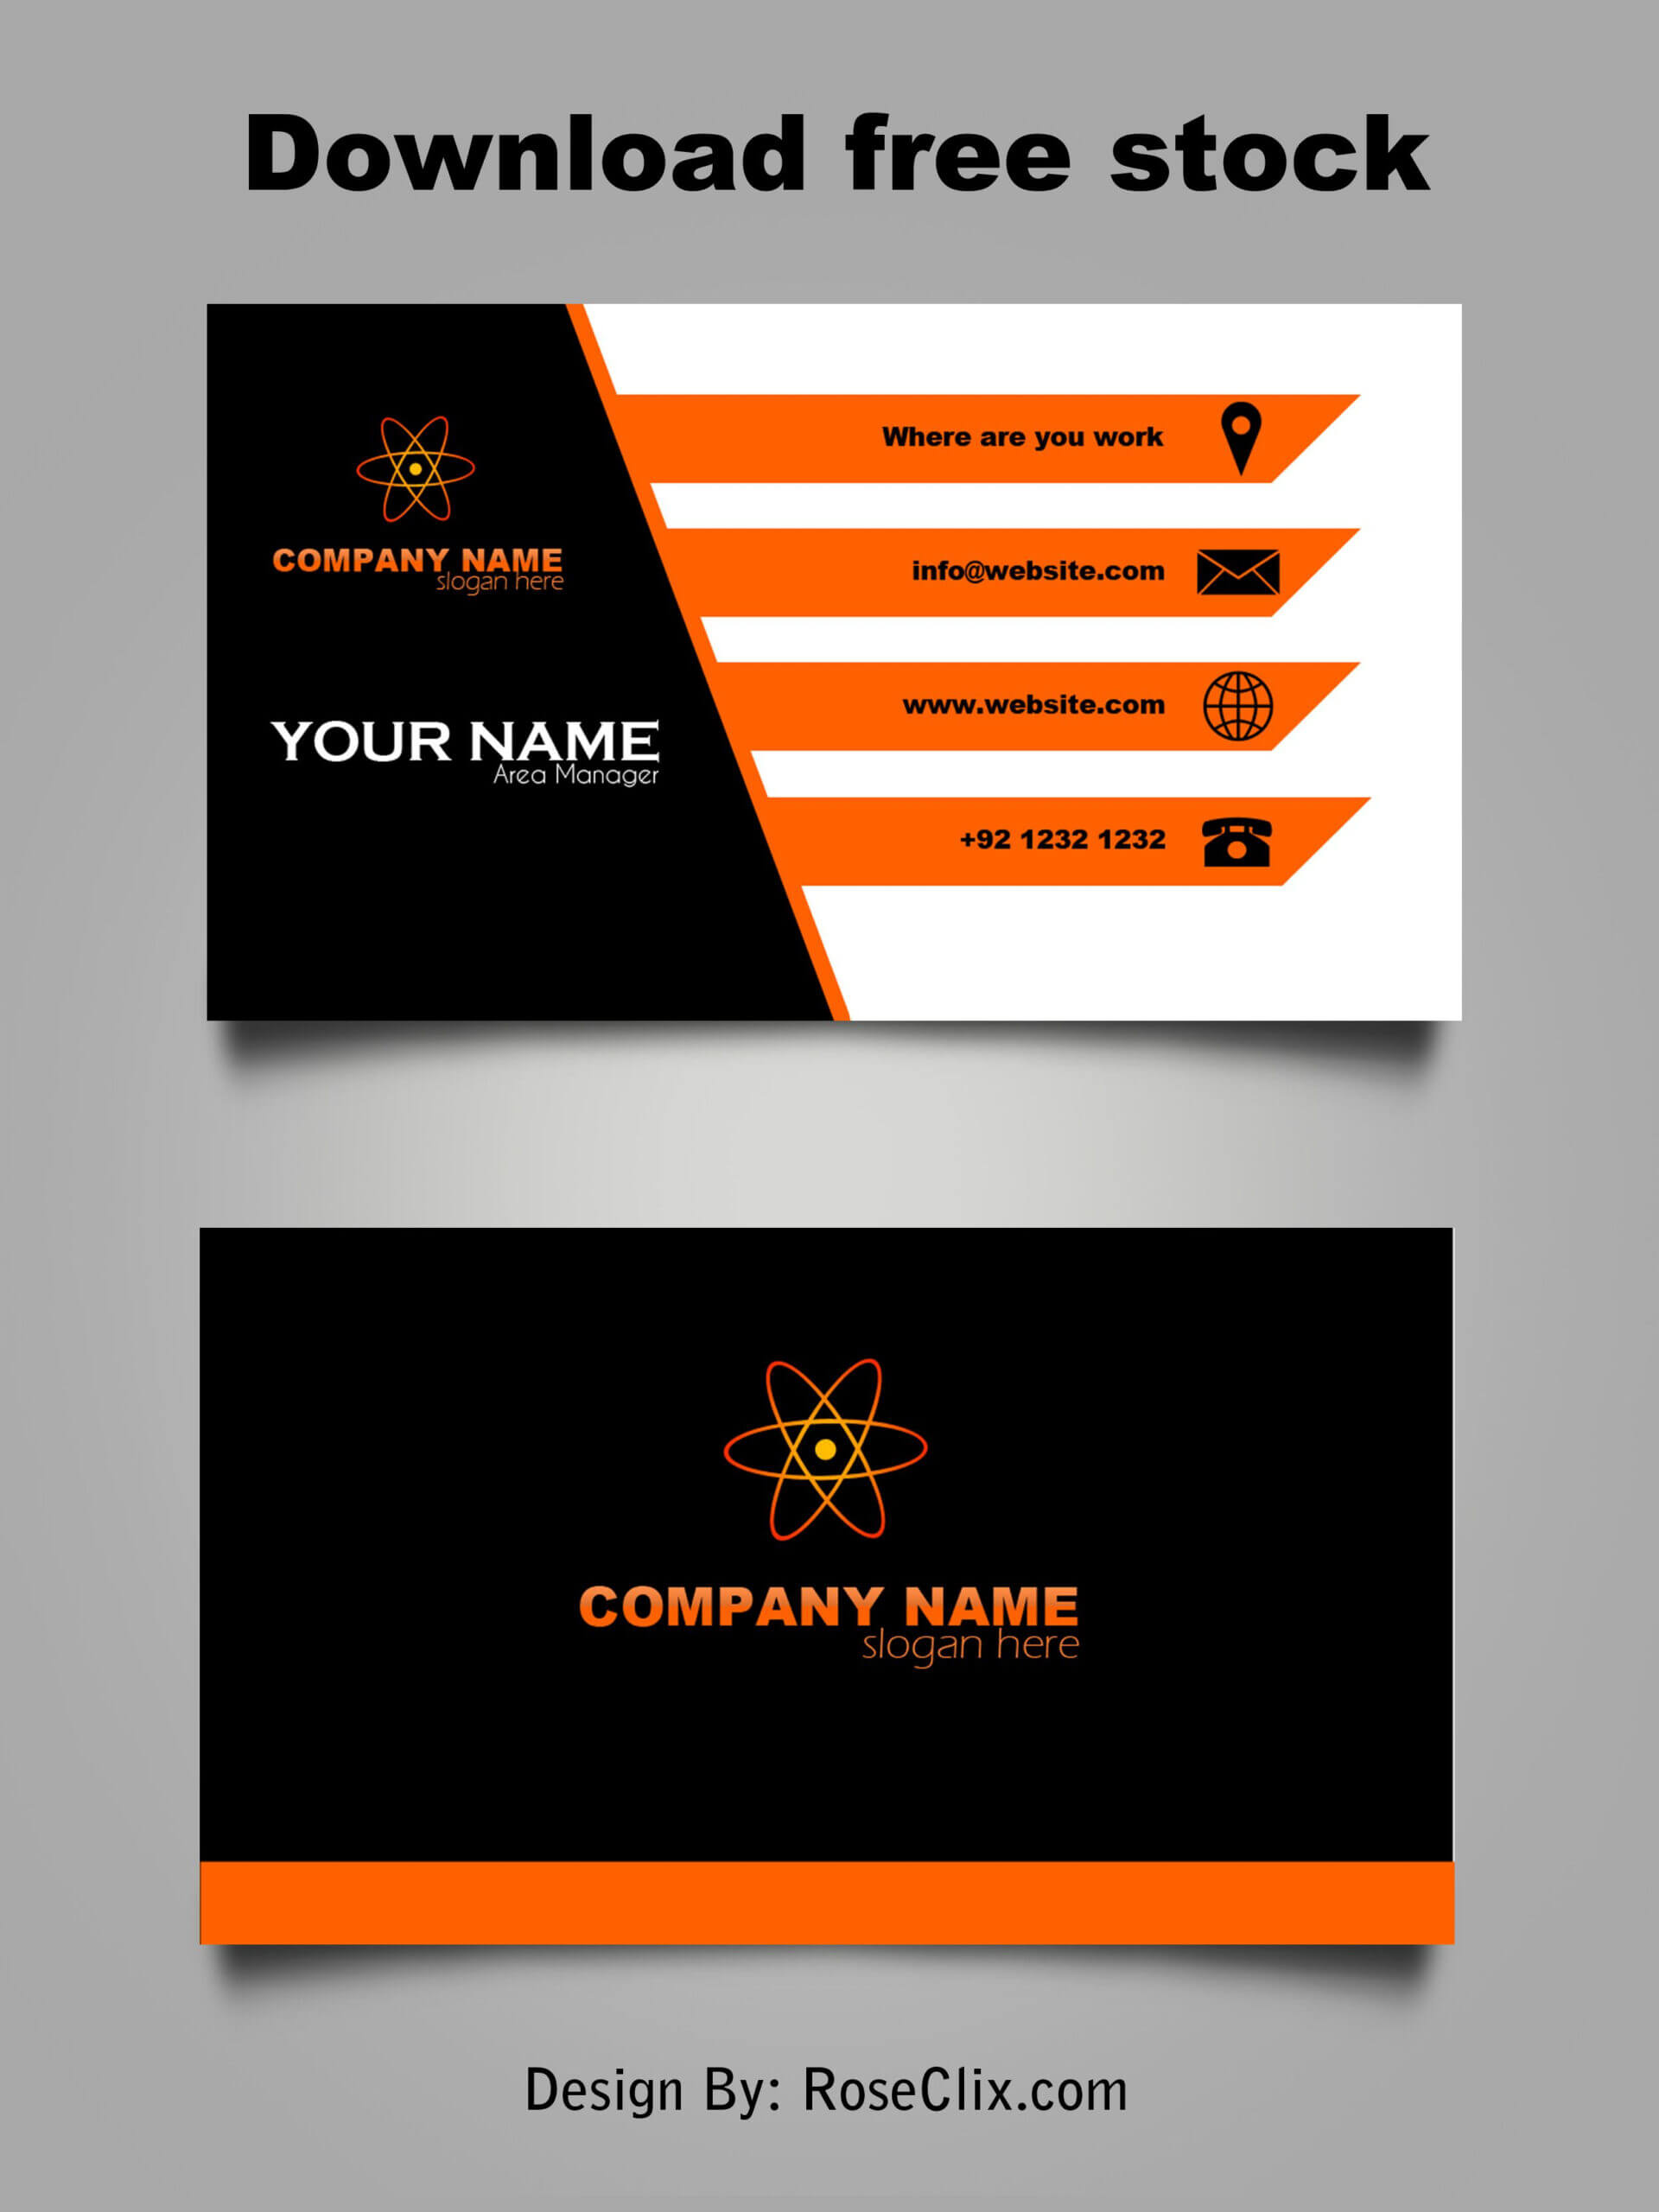 Business Card Template Free Downloads Psd Fils. | Free Intended For Visiting Card Templates Download